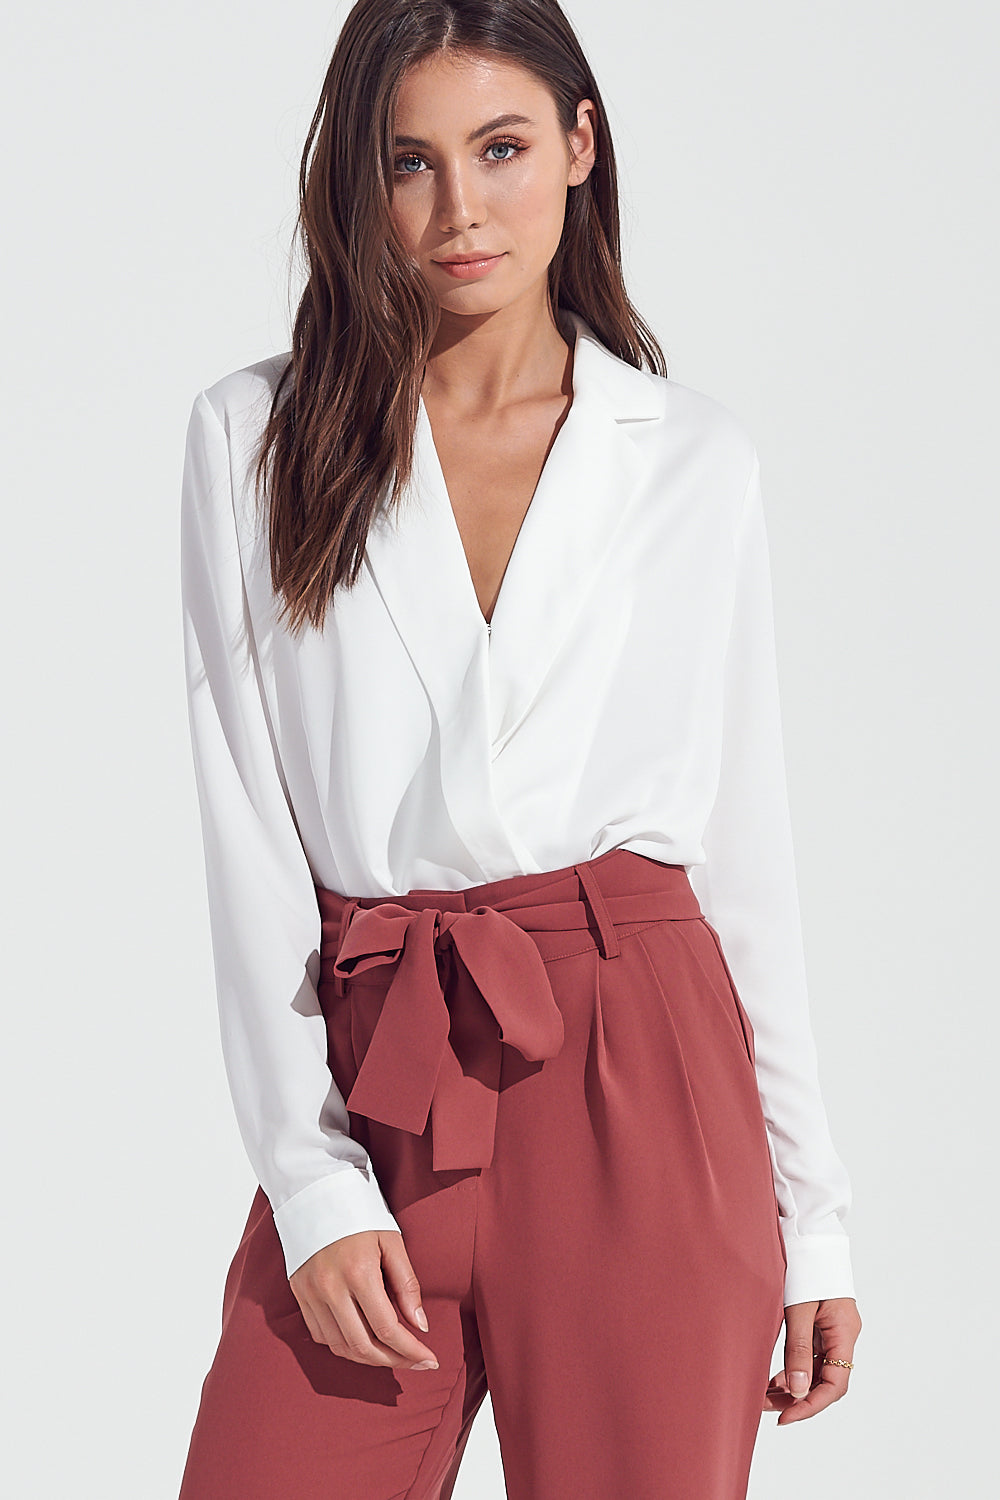 Top, Tank Top, Long Sleeve Top,Bodysuit, White Top, Blouse, Semi Formal Wear, Corporate, Cocktail Outfit, Blogger Style, Trendy, Fashionable Outfit